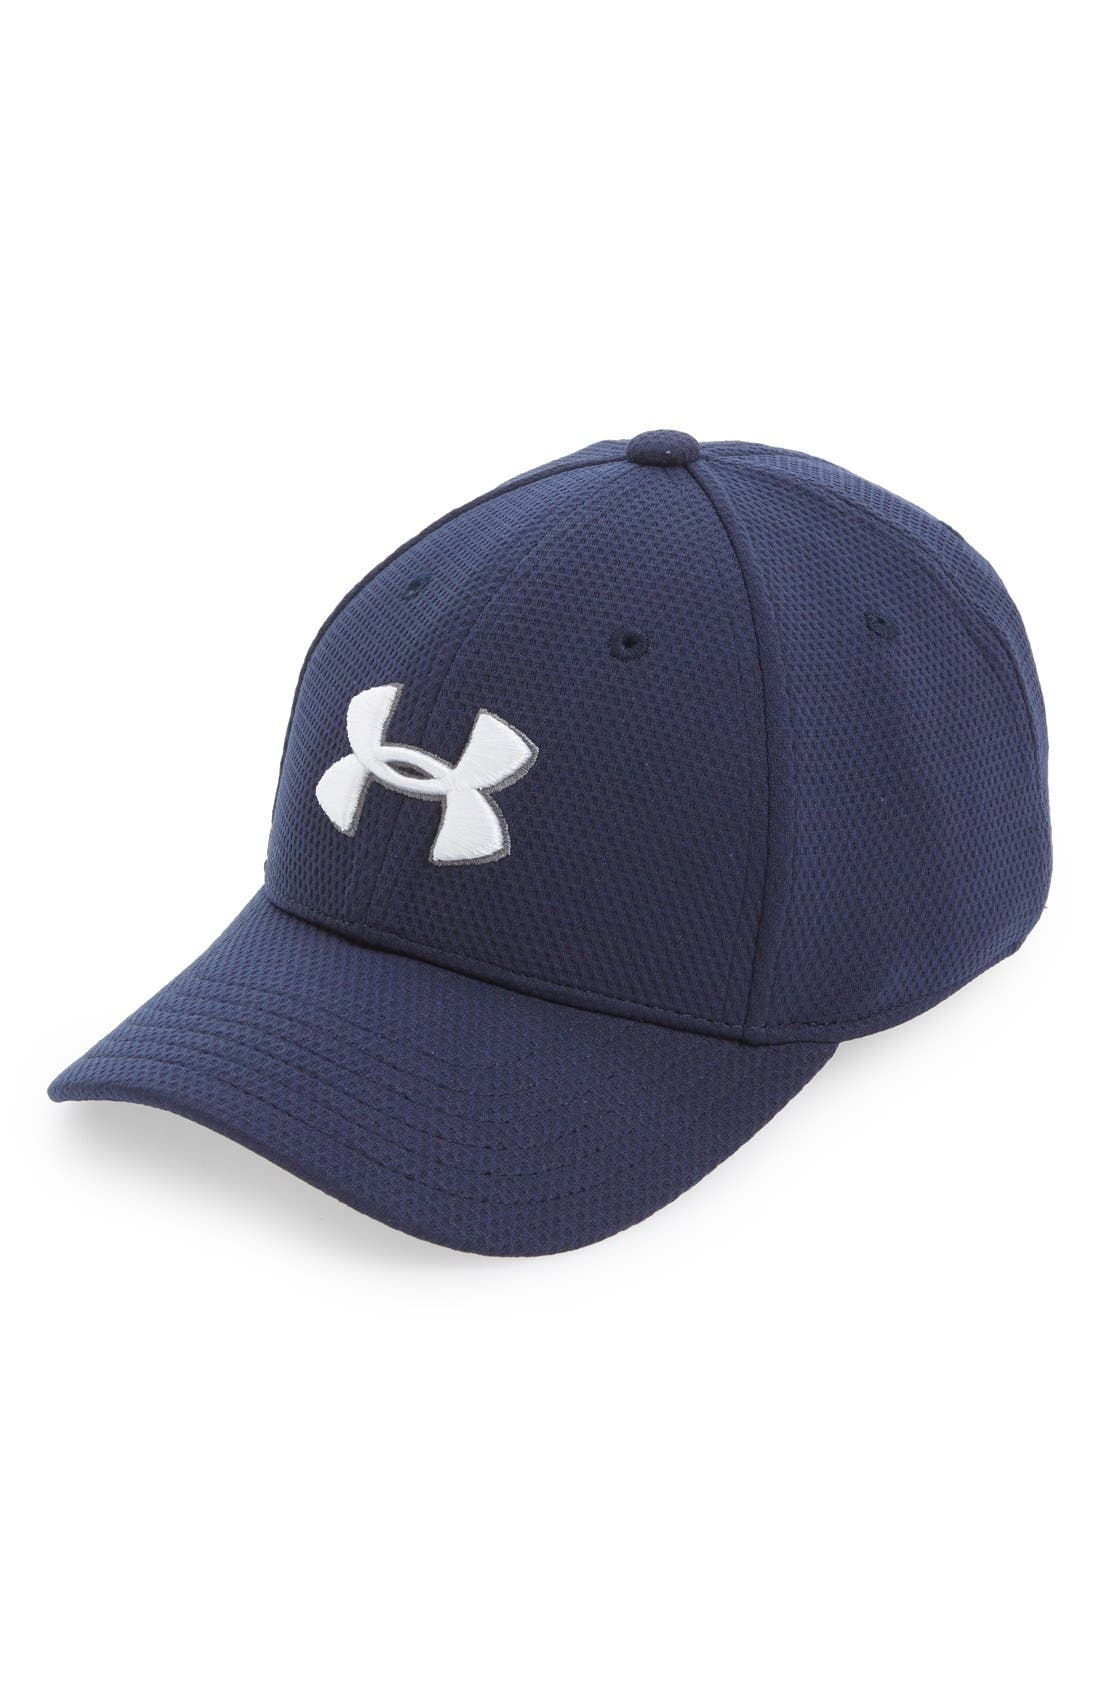 UNDER ARMOUR 'Blitzing 2.0' Stretch Fit Baseball Cap